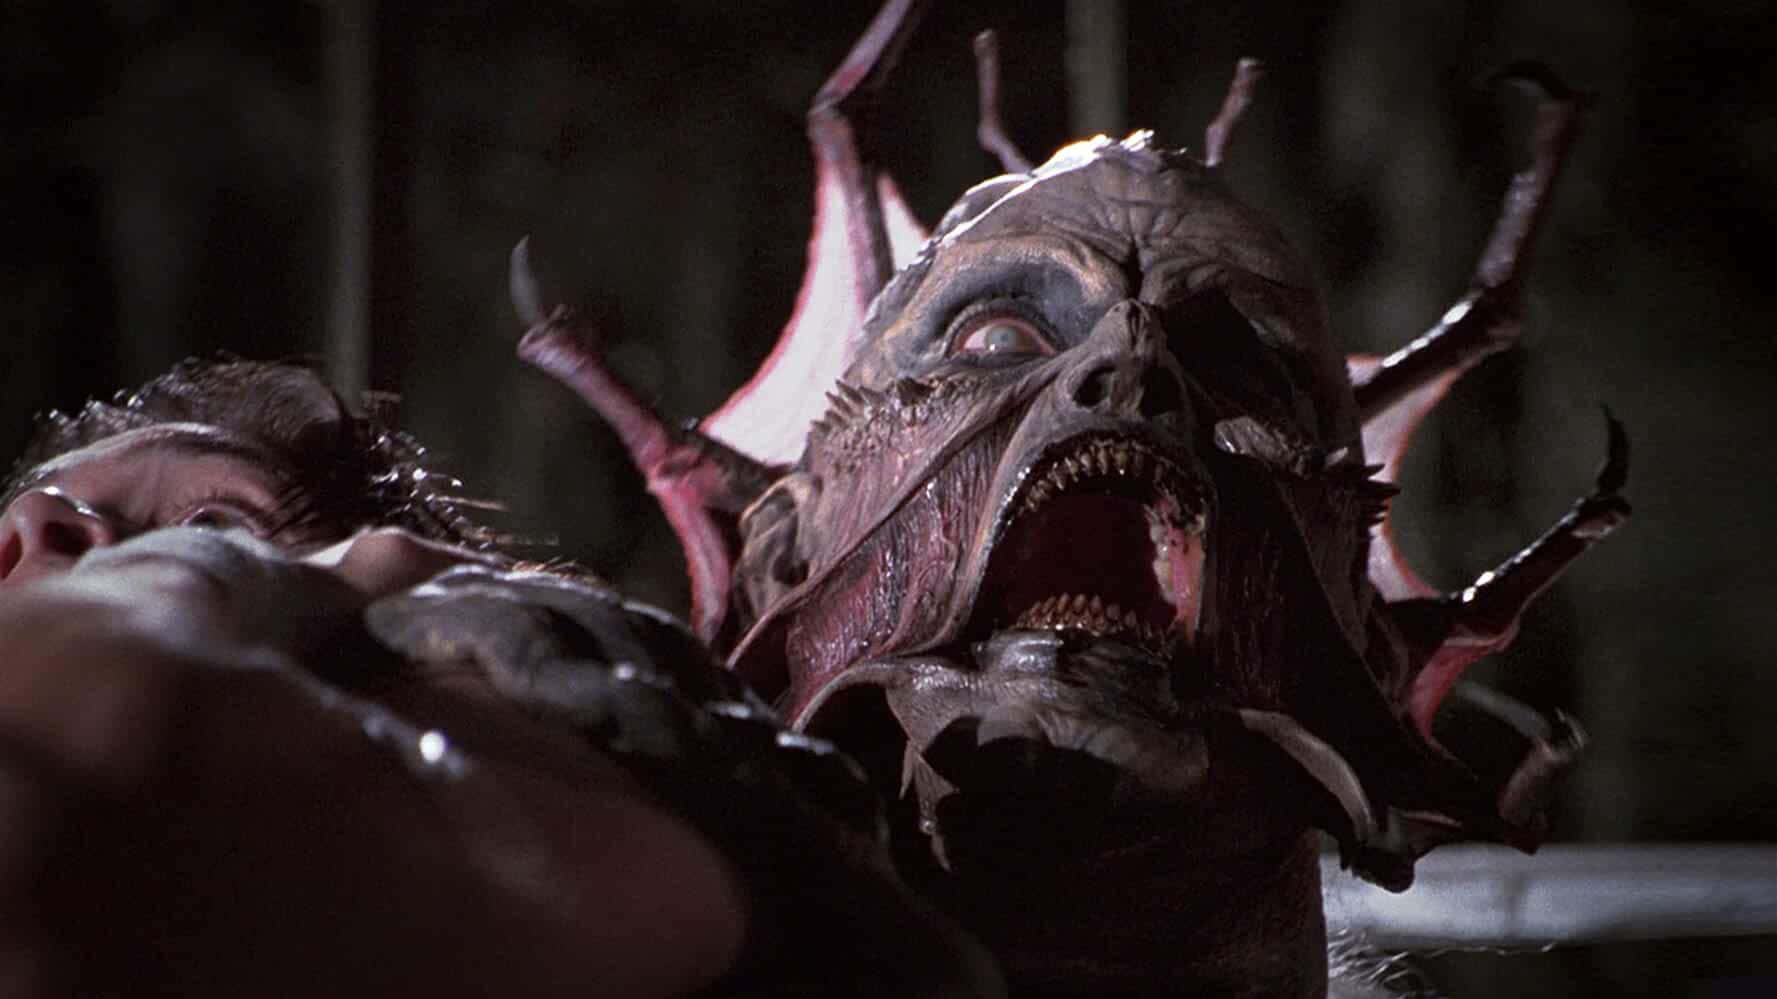 Jeepers Creepers 4' Is Reportedly In The Works, Here's Everything We Know So Far